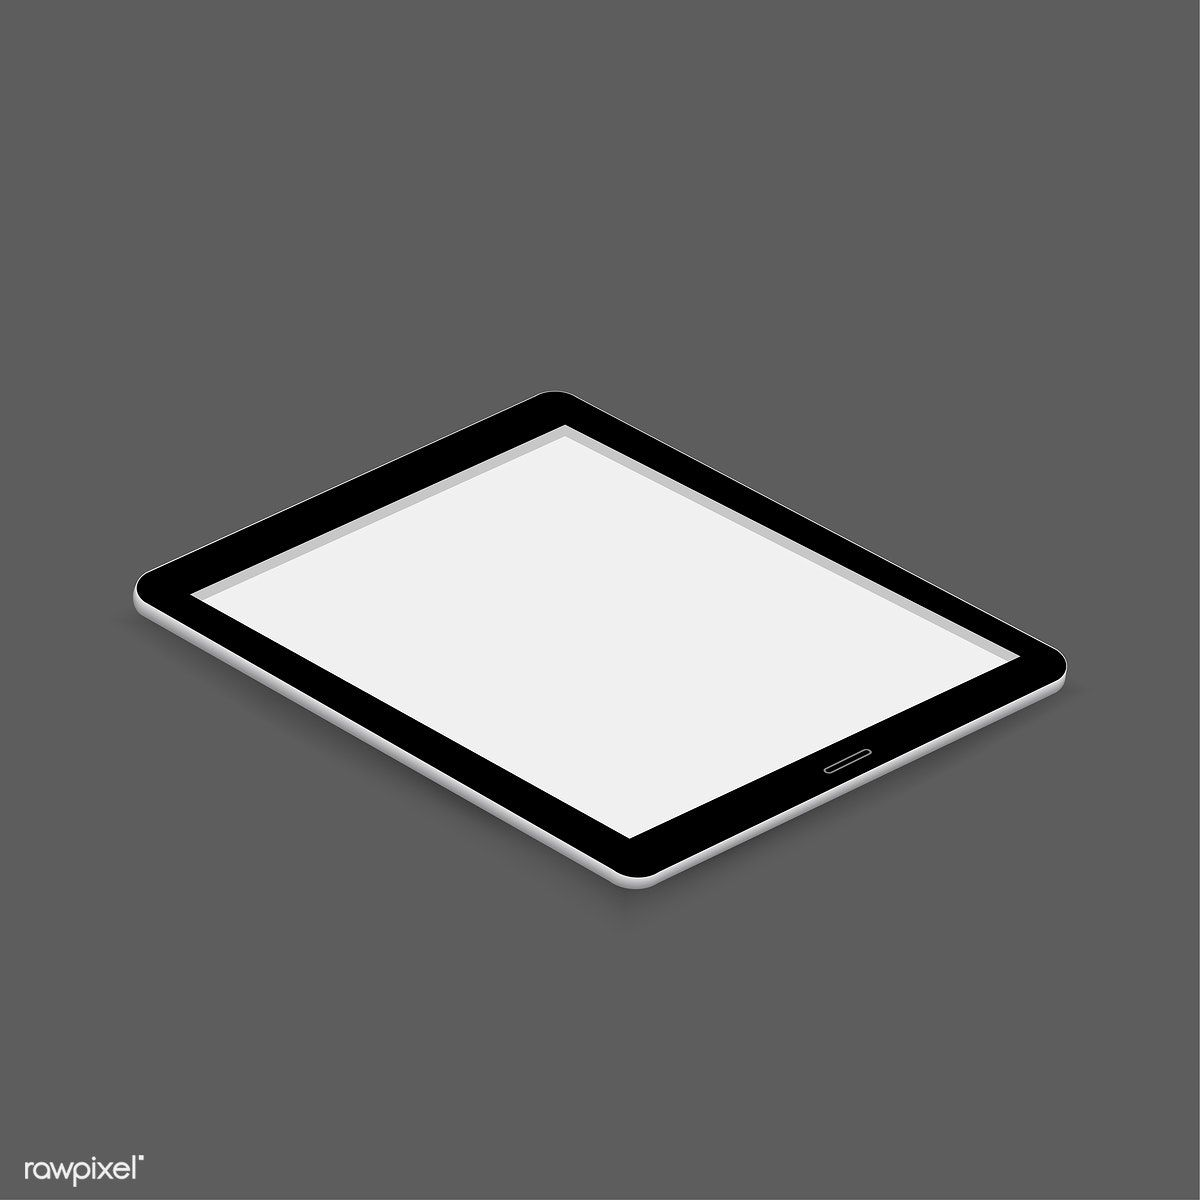 Vector of digital tablet icon | free image by rawpixel.com | Free ...